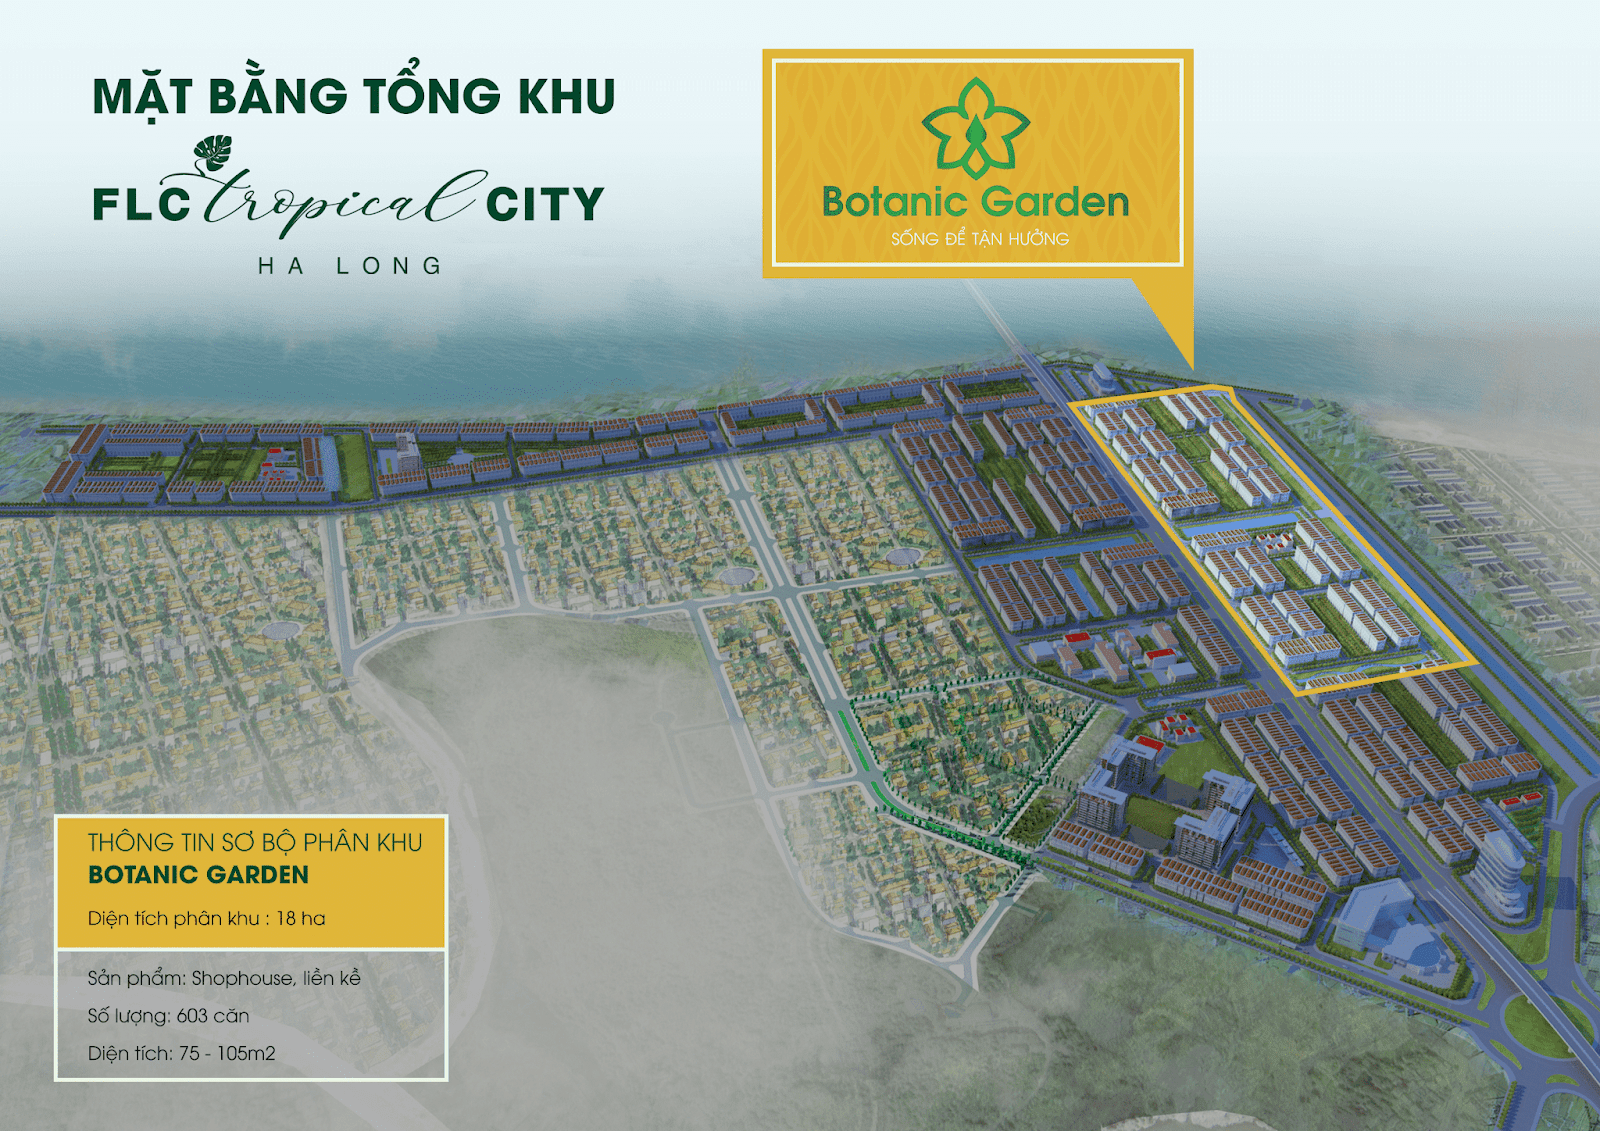 flc tropical city hạ long